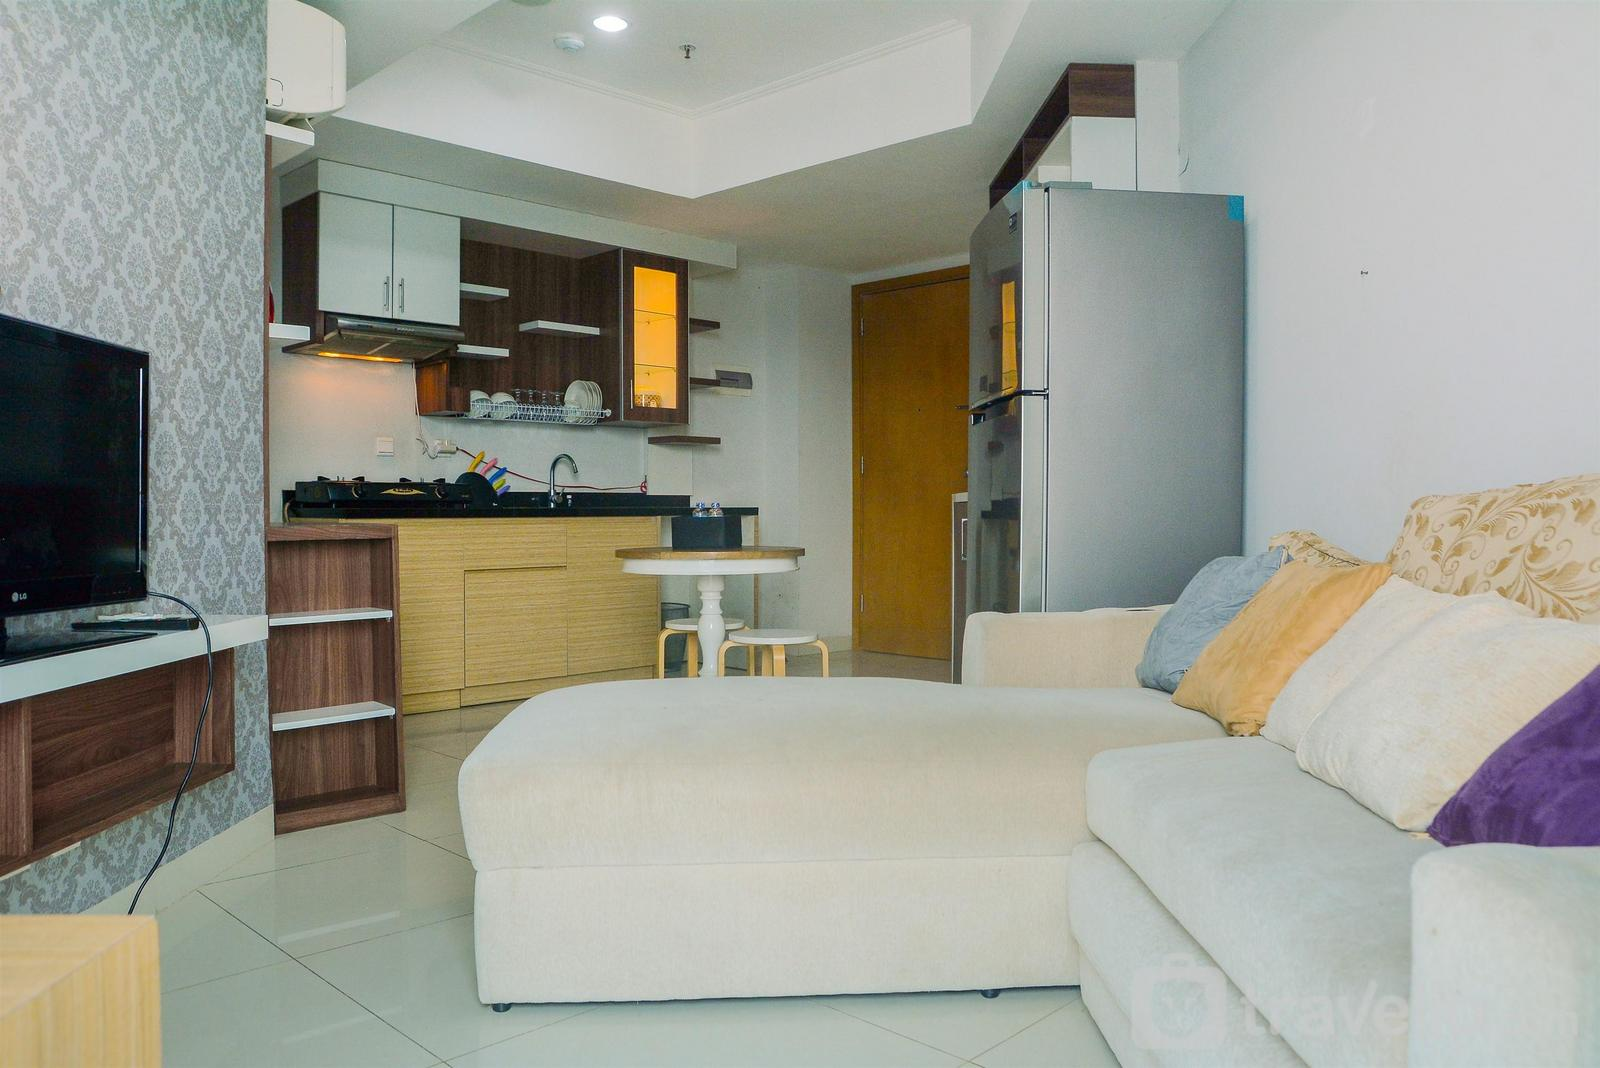 The Mansion Kemayoran - Modern and Comfy 2BR with Golf View at The Mansion Kemayoran By Travelio